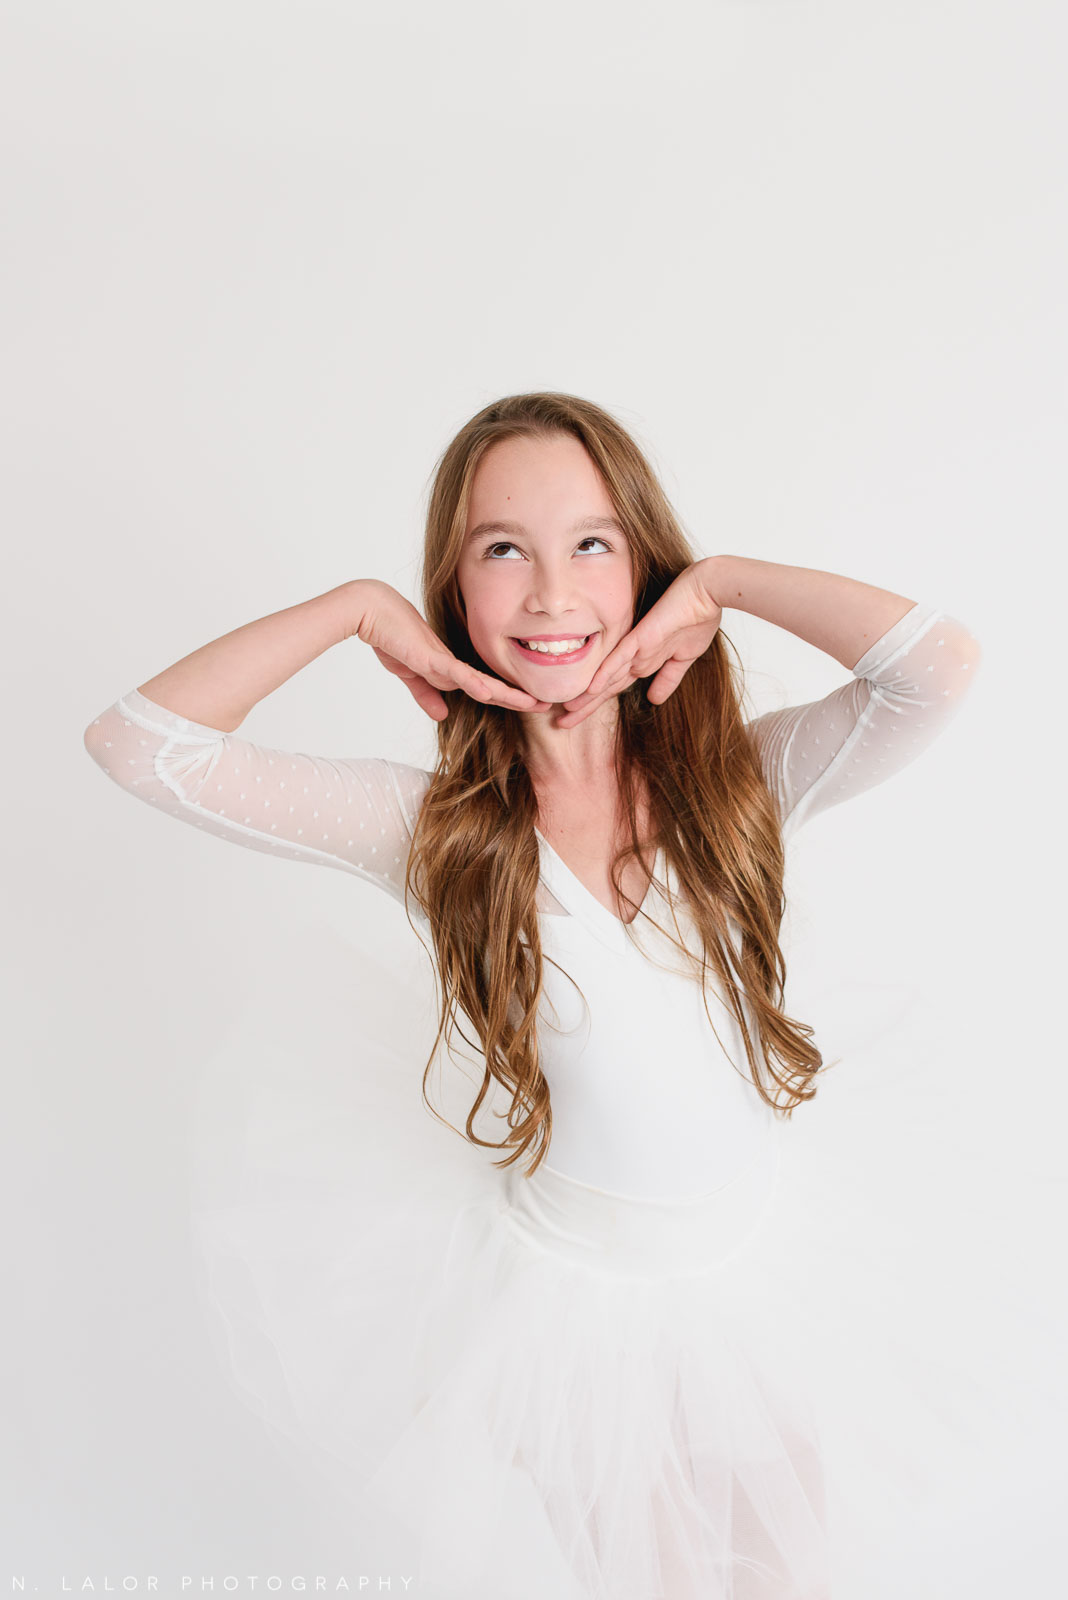 Being silly. Tween ballerina photoshoot with N. Lalor Photography. Greenwich, Connecticut.